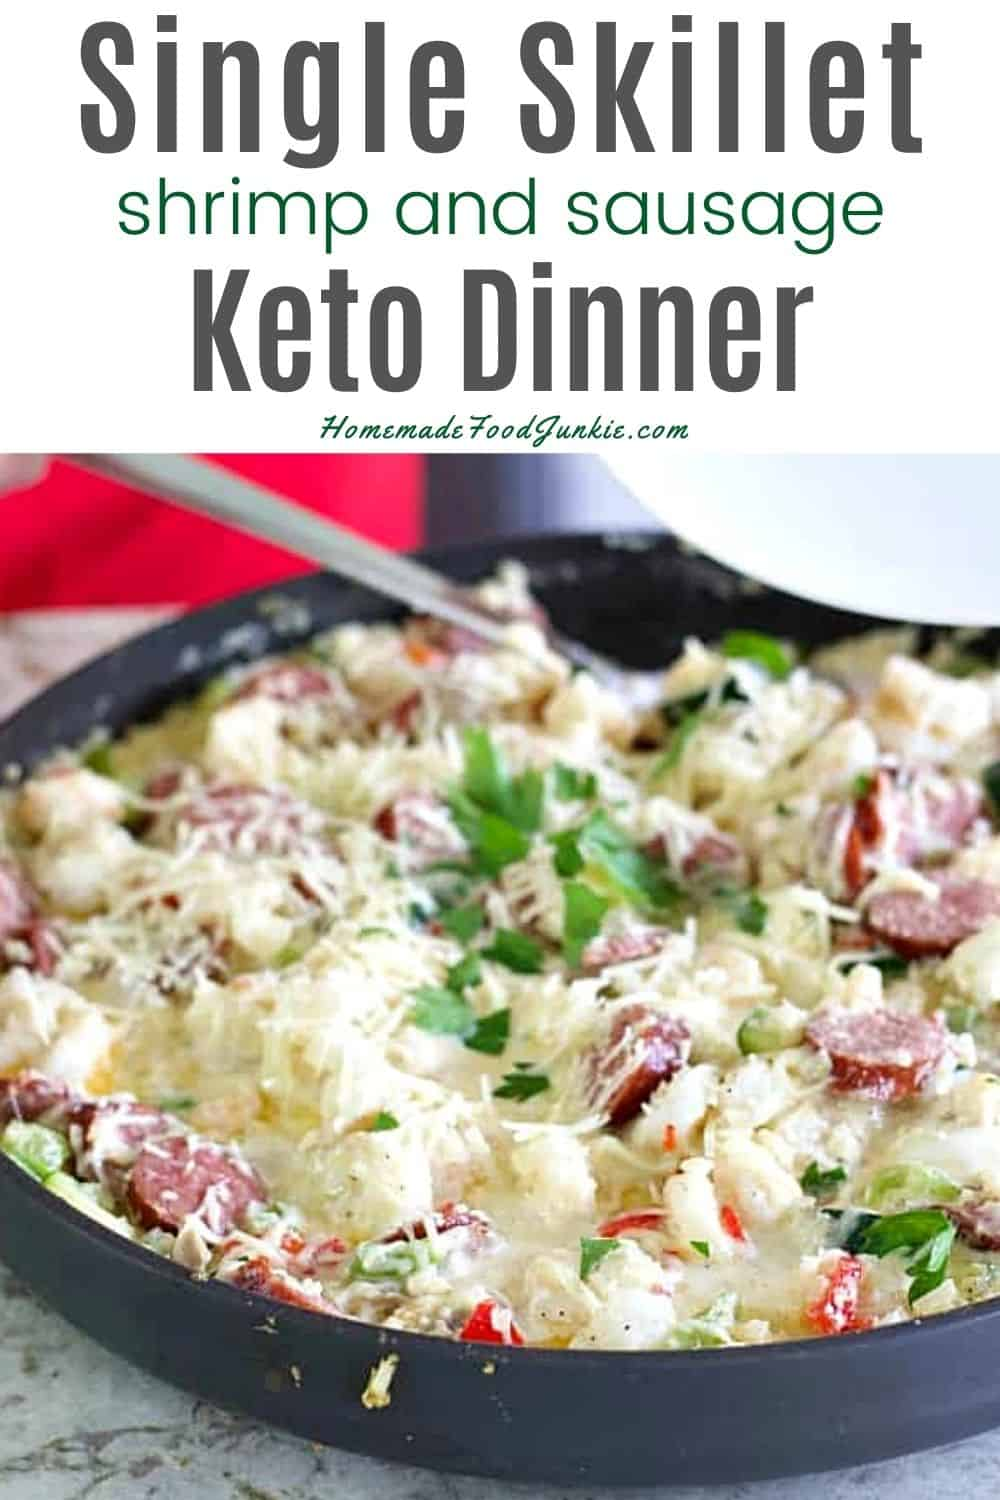 Single skillet shrimp and sausage keto dinner-pin image